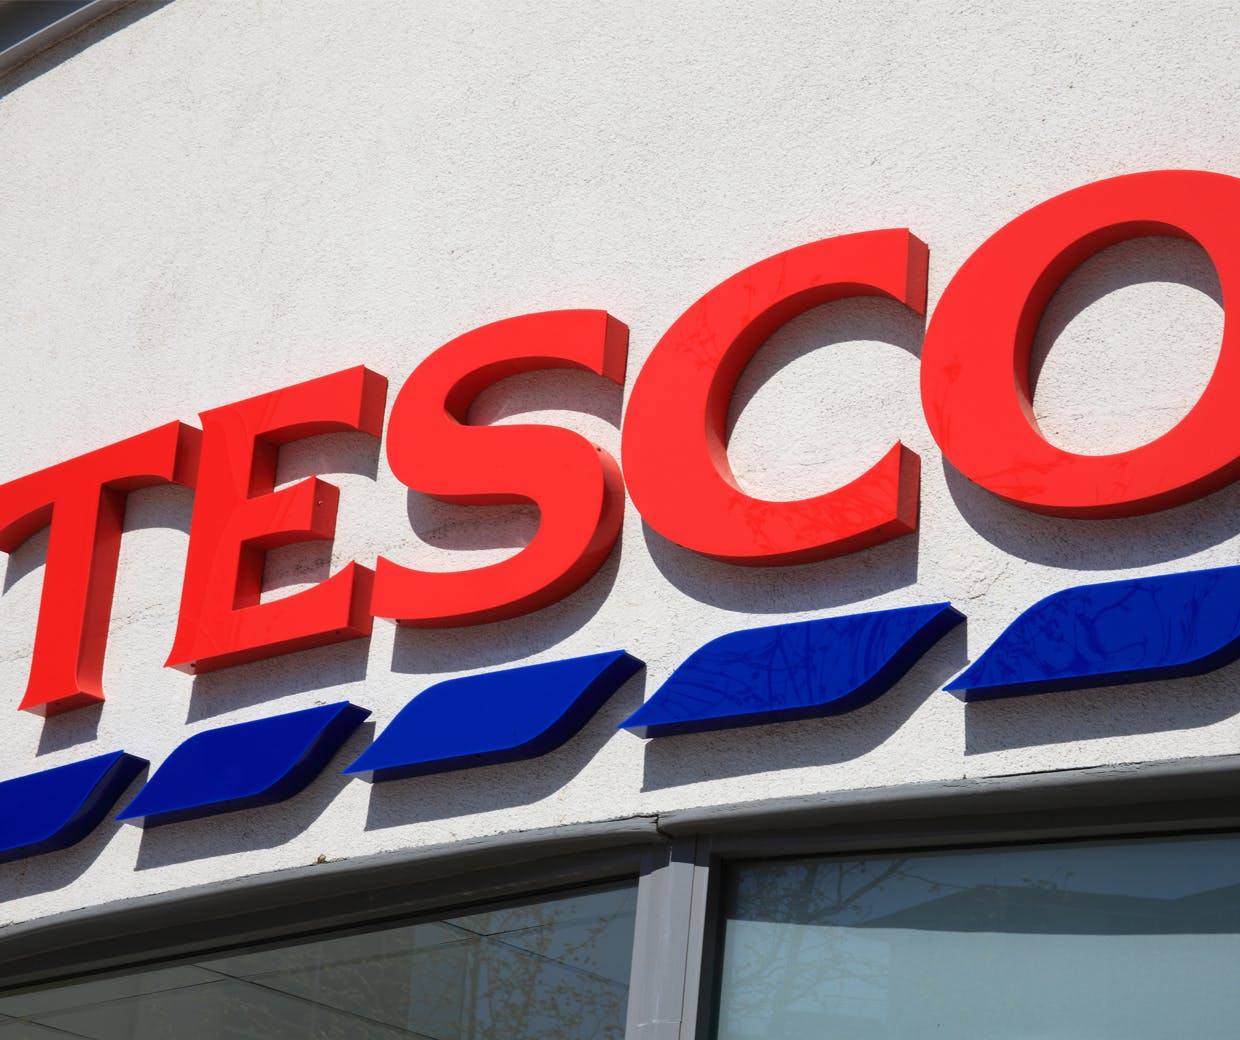 Tesco to sell Jack's products in-store for first time